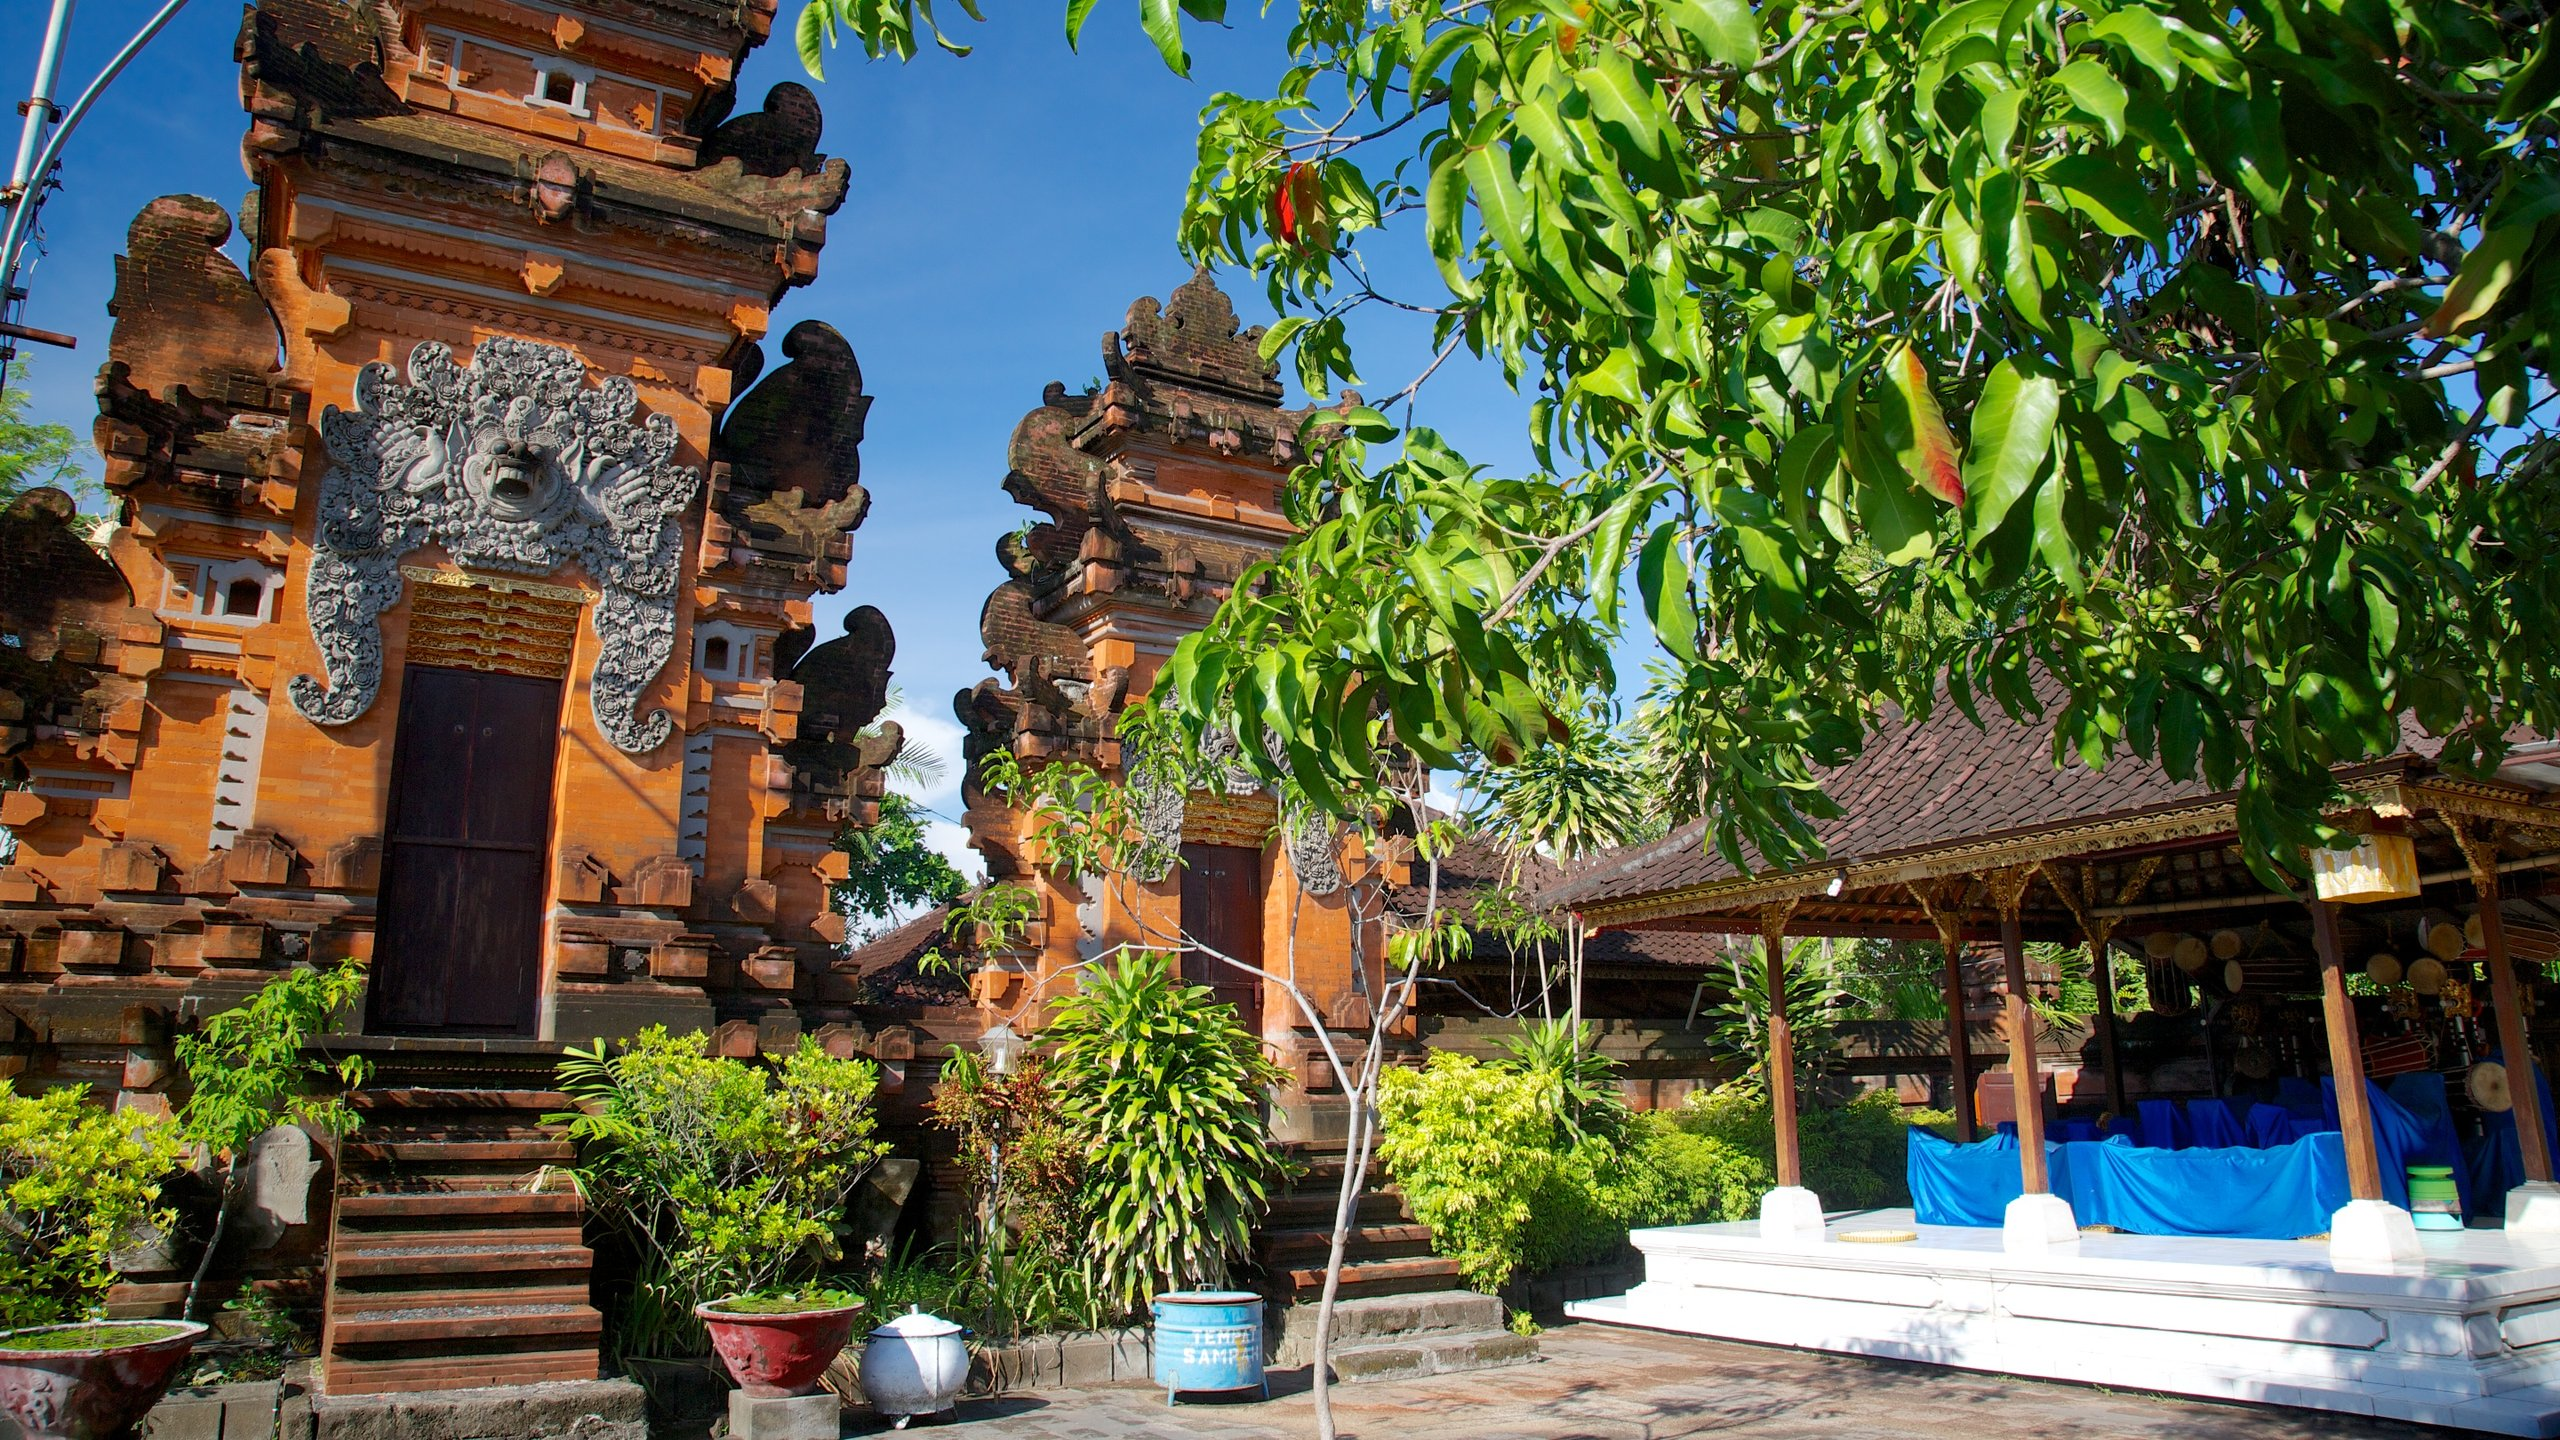 https://a.travel-assets.com/findyours-php/viewfinder/images/res70/42000/42468-Petitenget-Temple-Seminyak.jpg